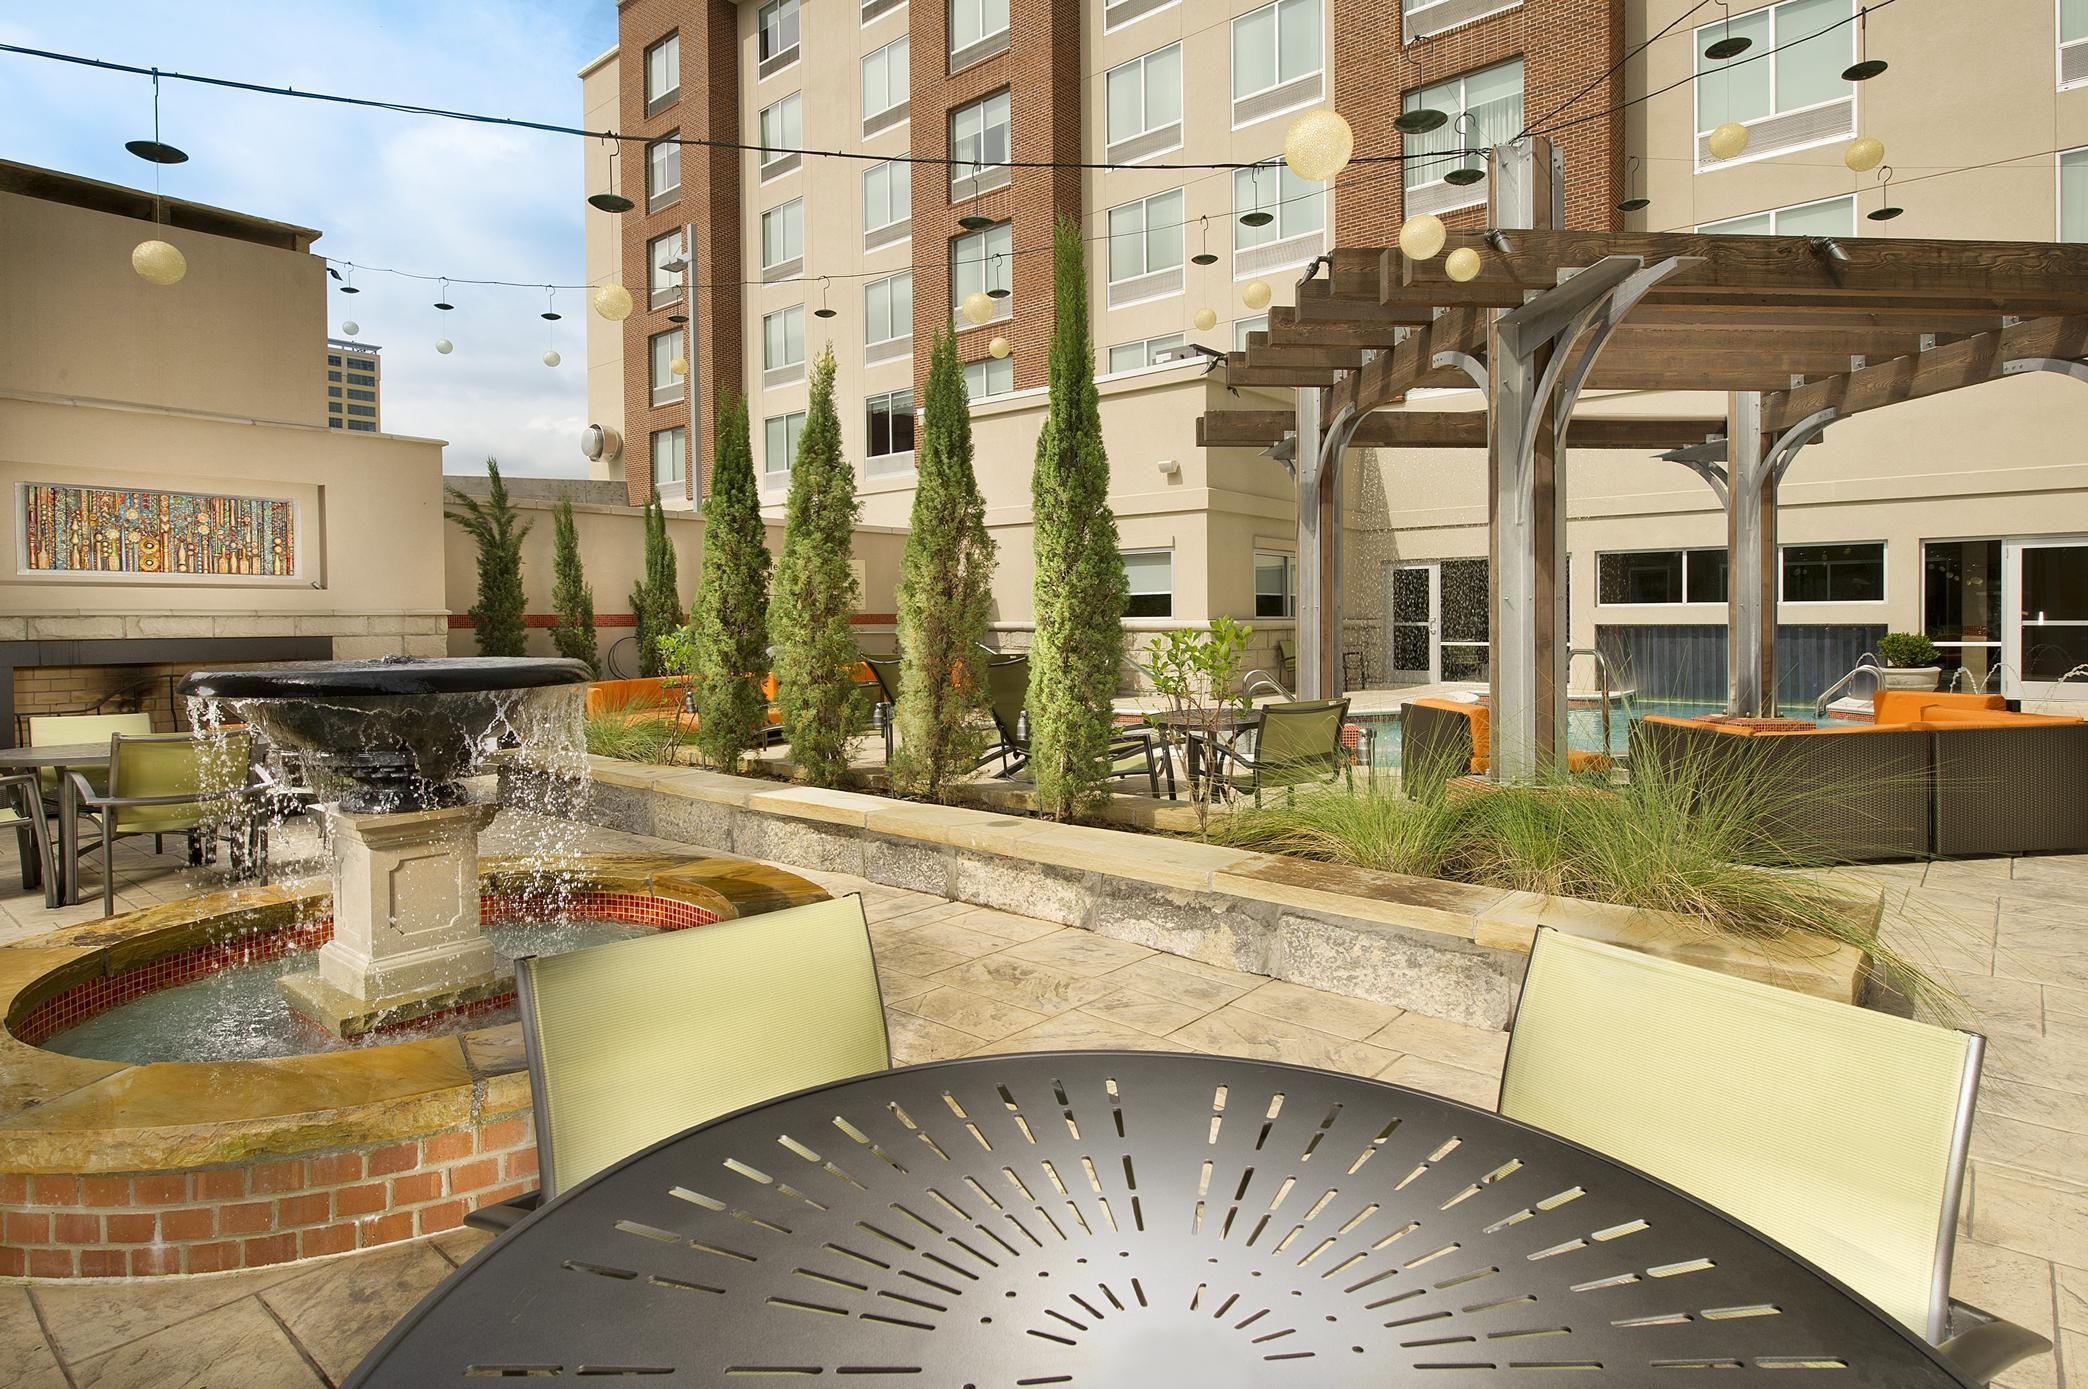 Hampton Inn Suites Chattanooga Downtown At 400 Chestnut Street Chattanooga Tn On Fave